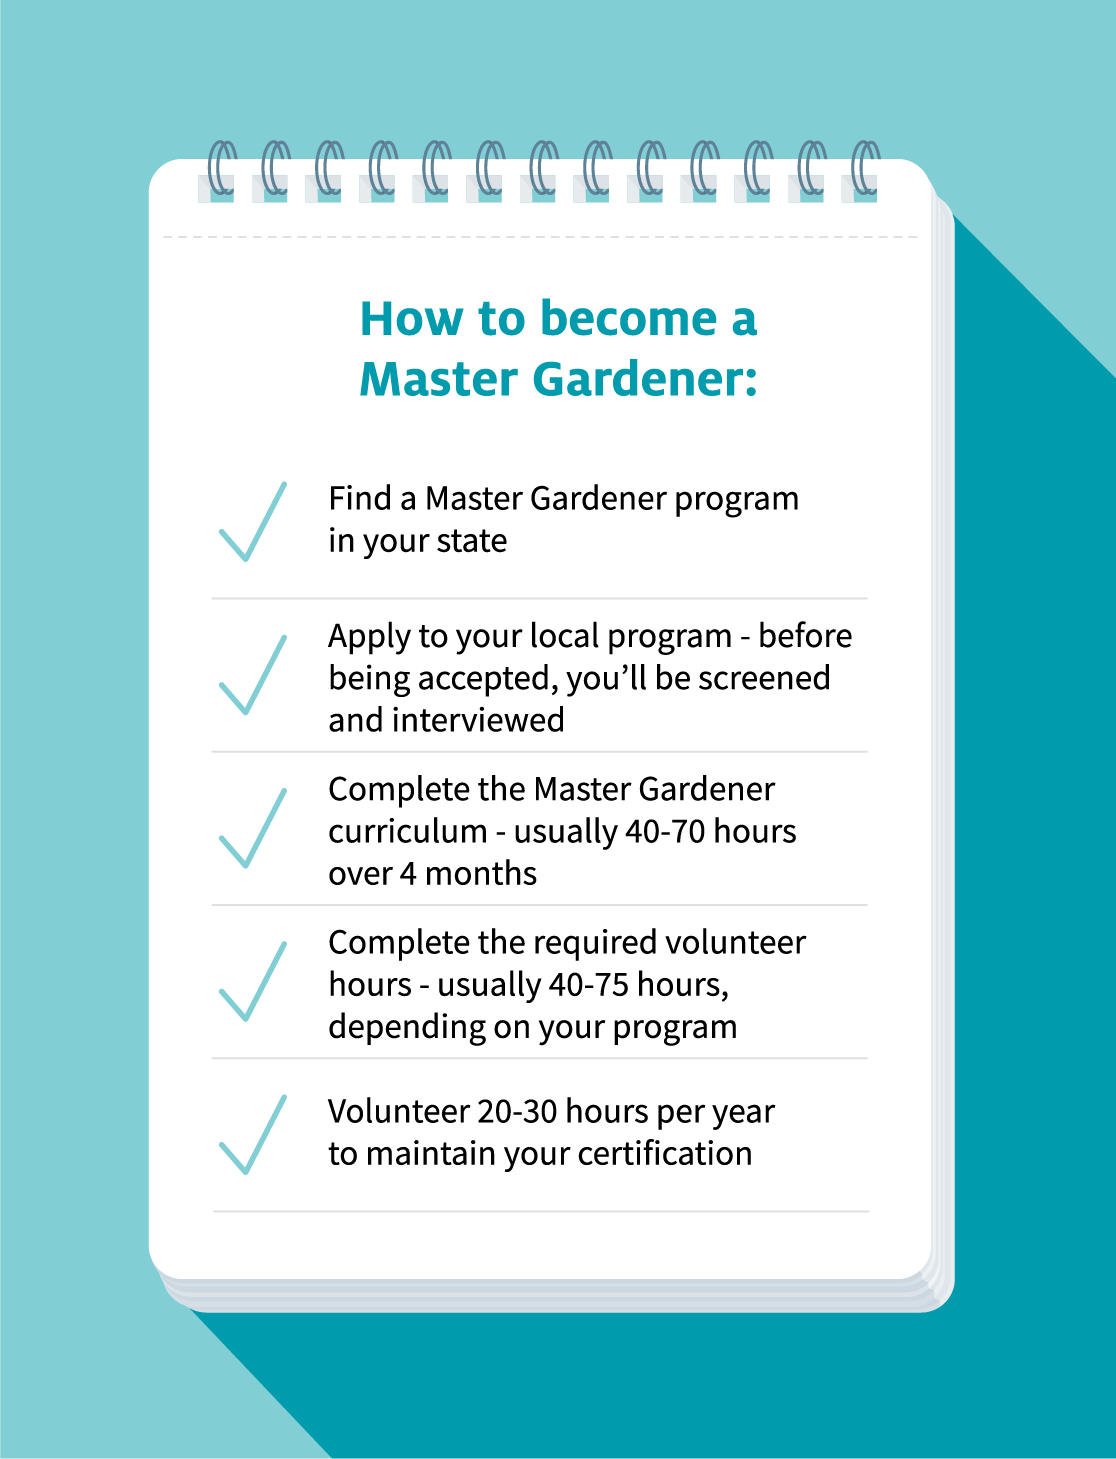 Requirements of becoming a master gardener